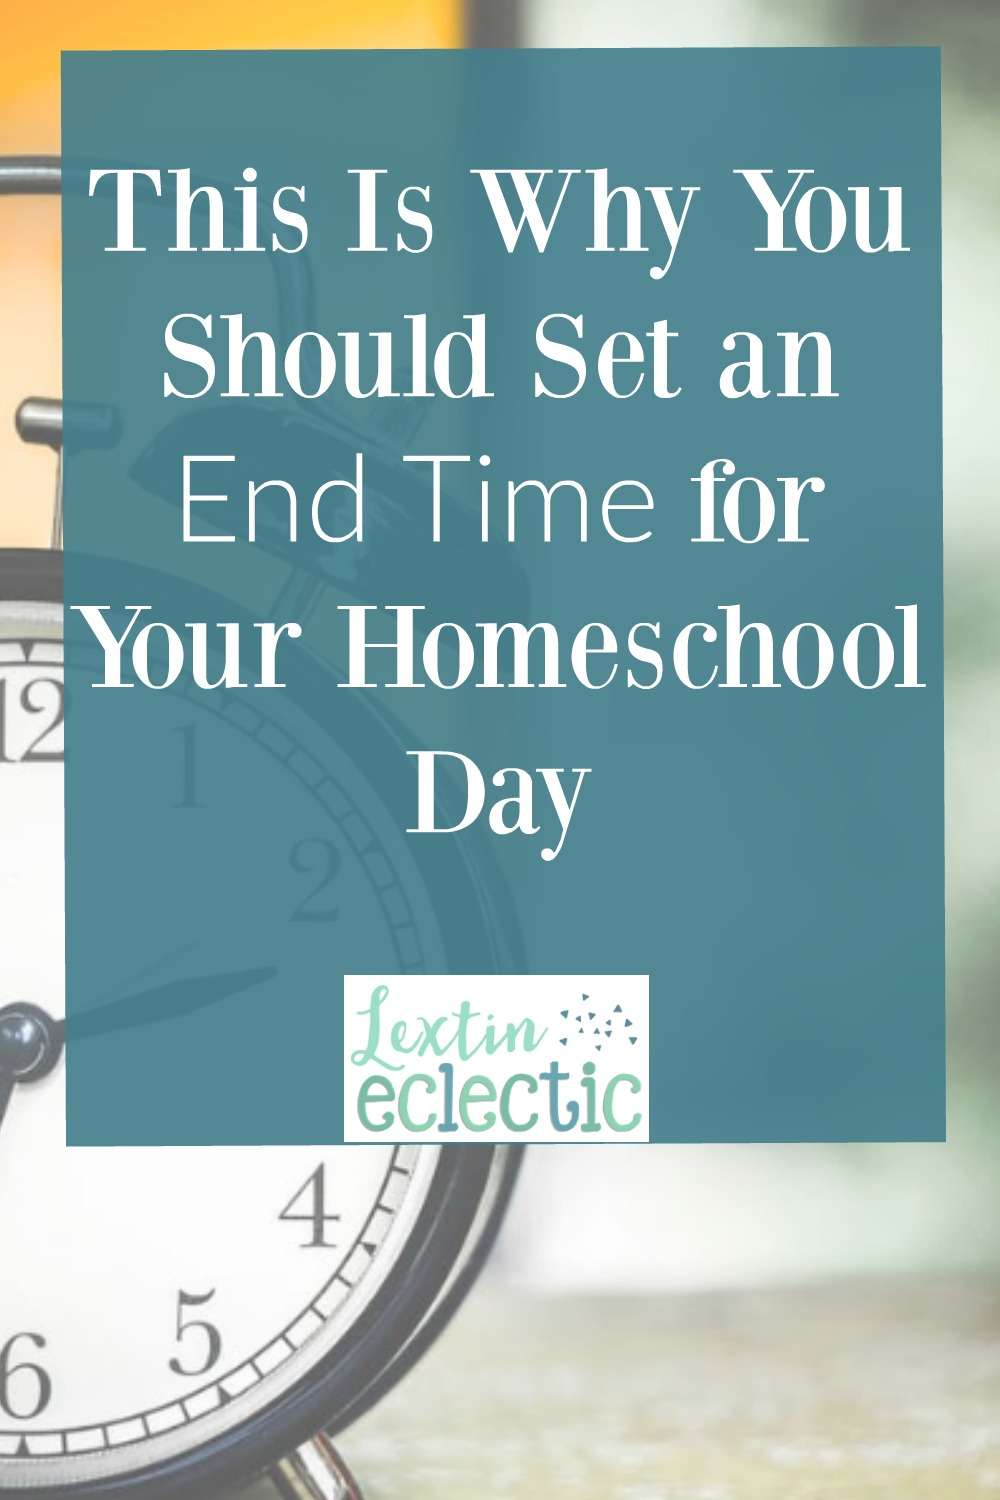 why you should set an end time for your homeschool lextin eclectic. Black Bedroom Furniture Sets. Home Design Ideas